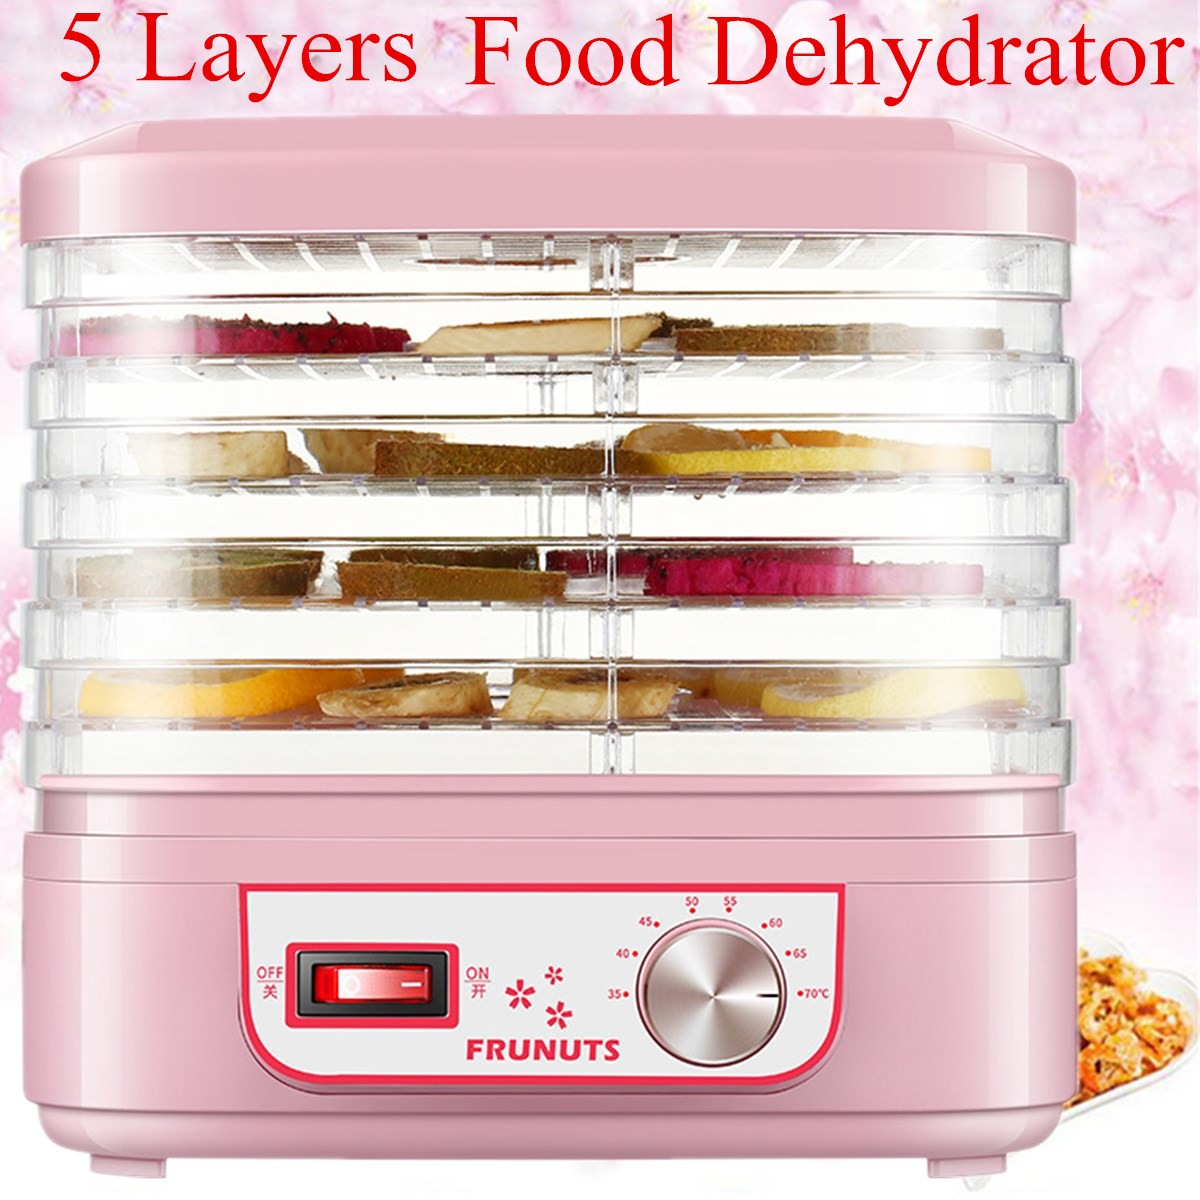 Food Dehydrator Fruit Vegetable Herb Meat Drying Machine Pet Snacks Food Dryer With 5 Trays 220V Kitchen AppliancesFood Dehydrator Fruit Vegetable Herb Meat Drying Machine Pet Snacks Food Dryer With 5 Trays 220V Kitchen Appliances